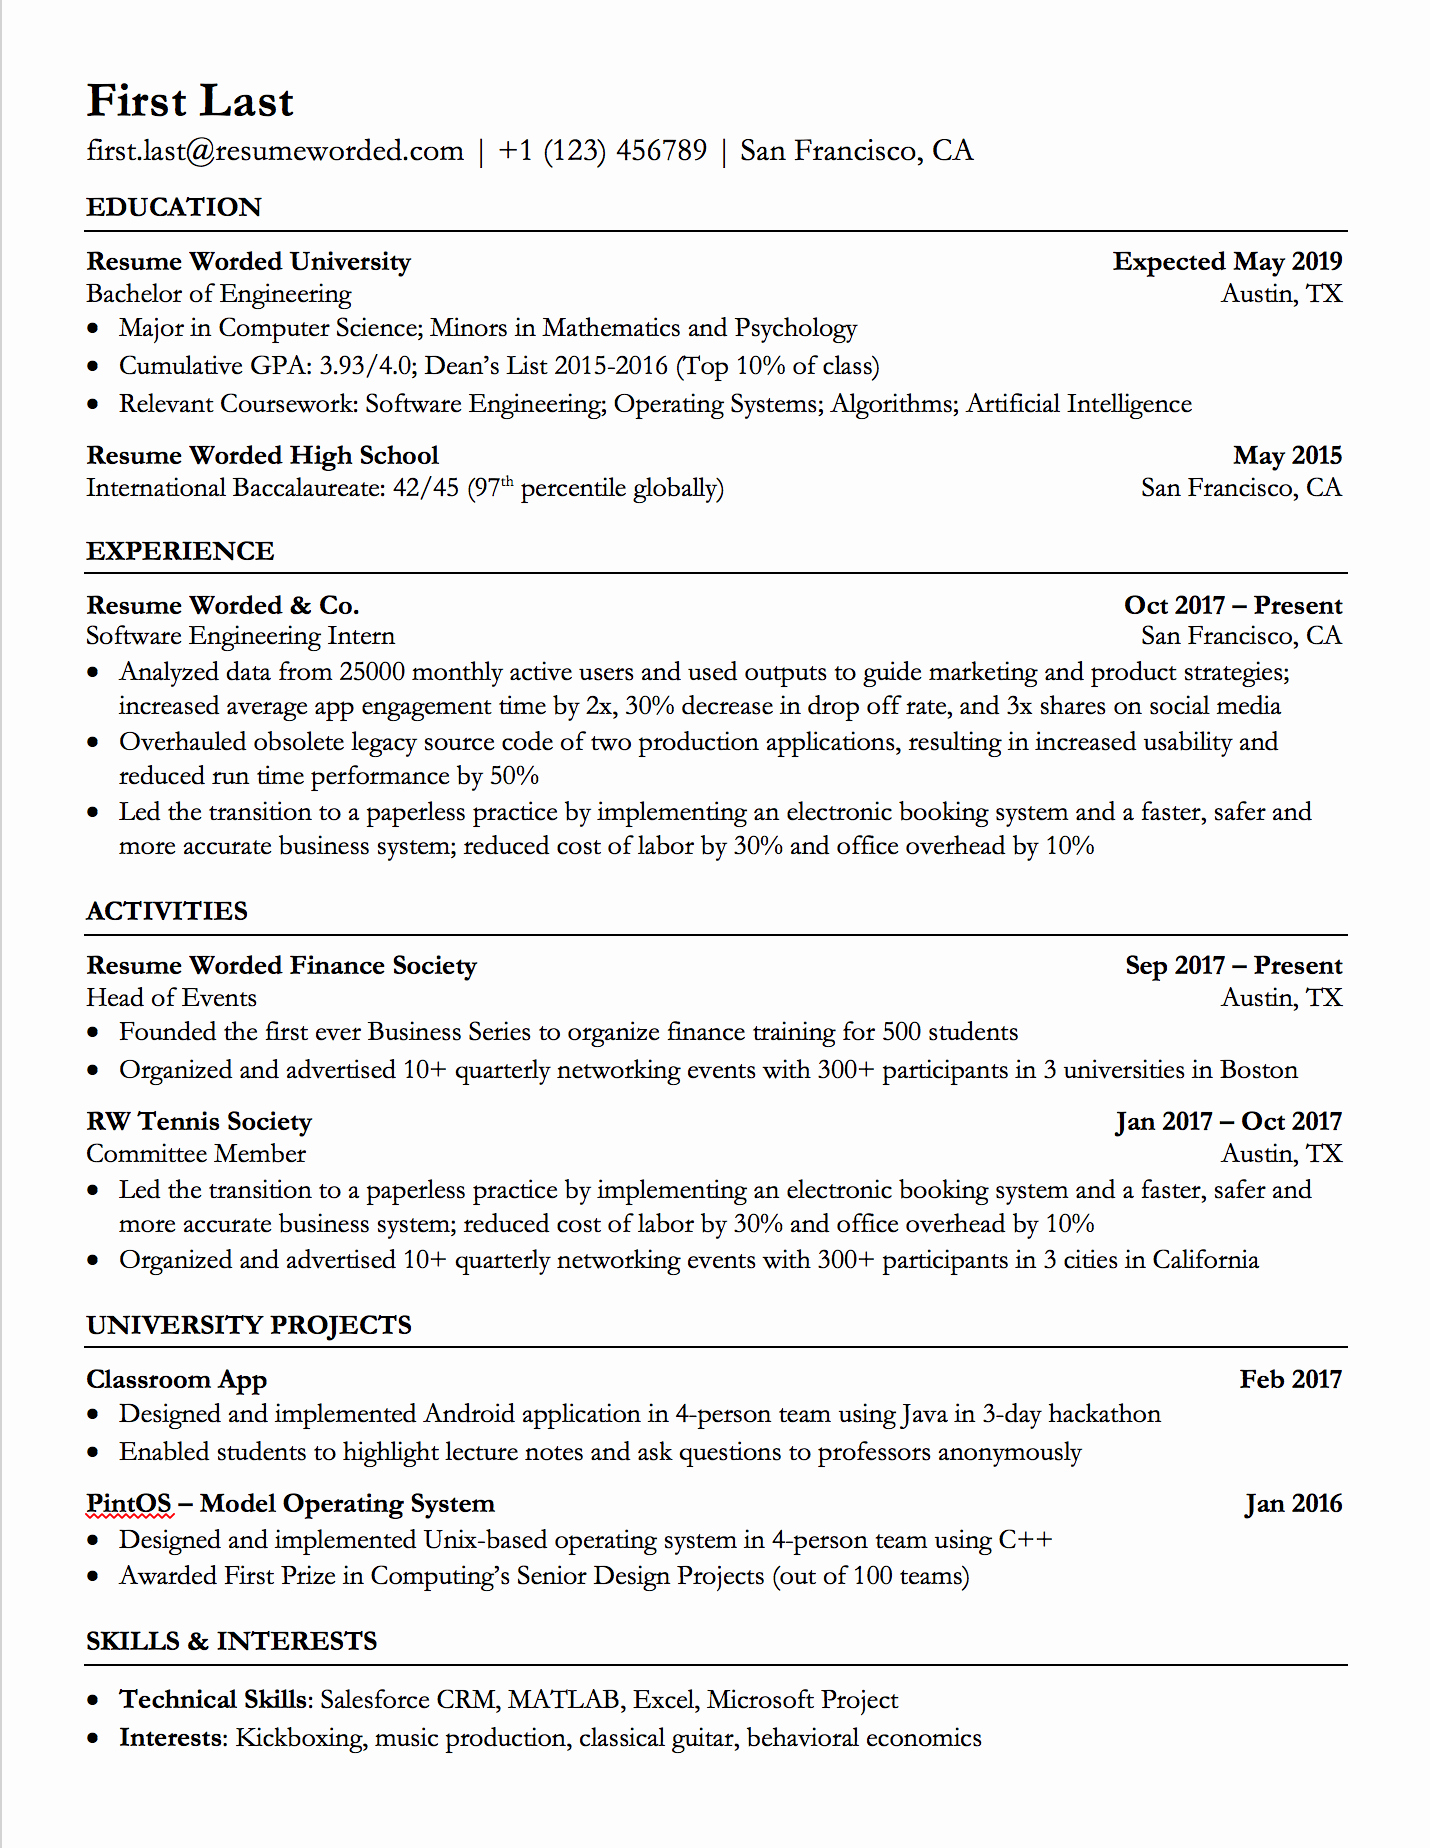 Resume Template with Photo Beautiful Professional ats Resume Templates for Experienced Hires